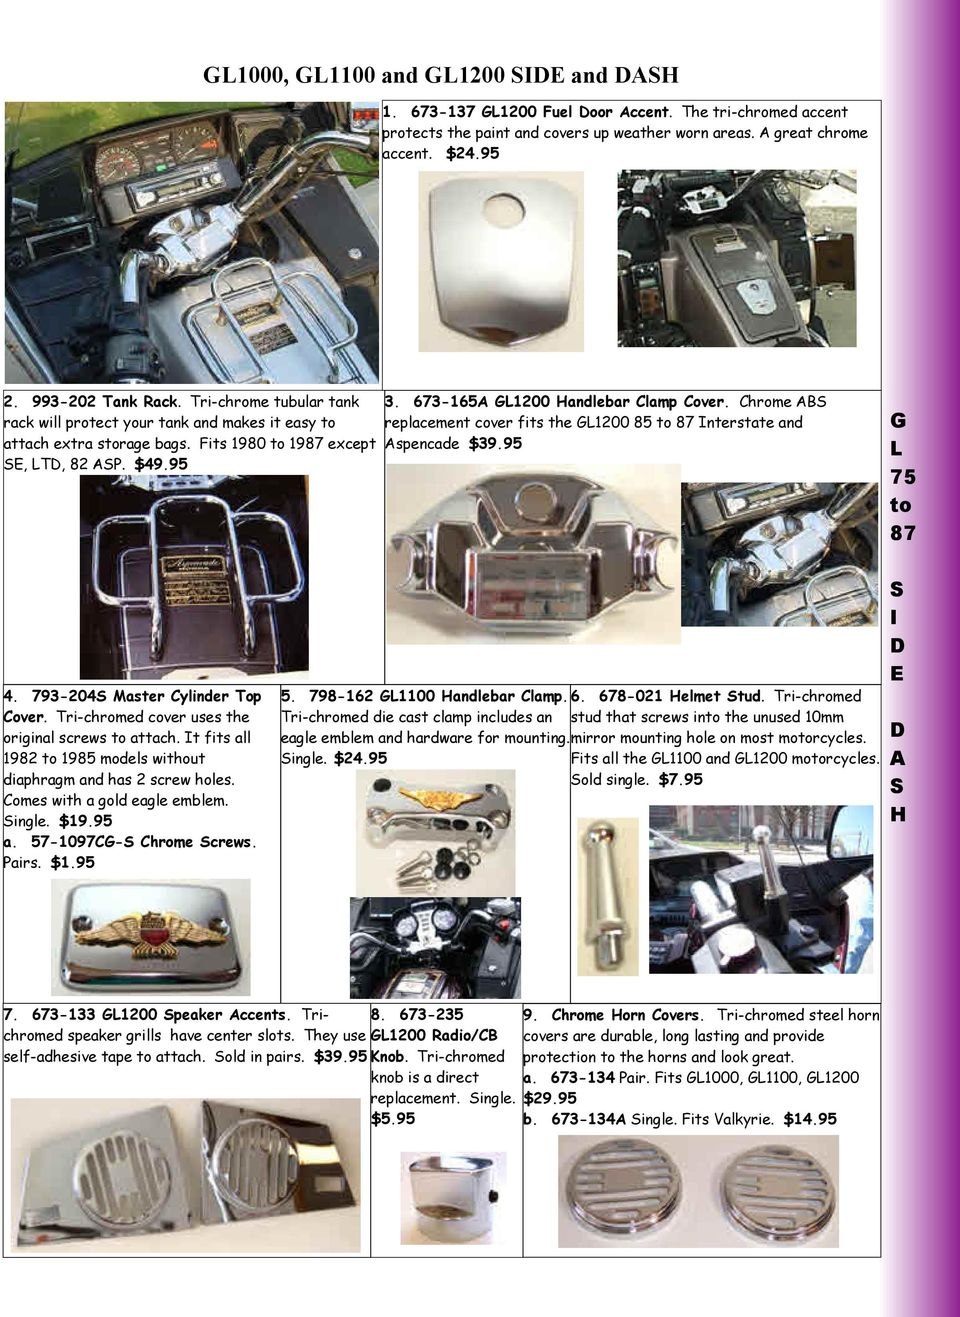 G L 75 To 87 F R O N T Pdf 1982 Honda Goldwing Gl1200 Aspencade Wiring Diagram Usa Chrome B Replement Over Fits The 1200 85 Interstte Nd Spende 3995 4 793